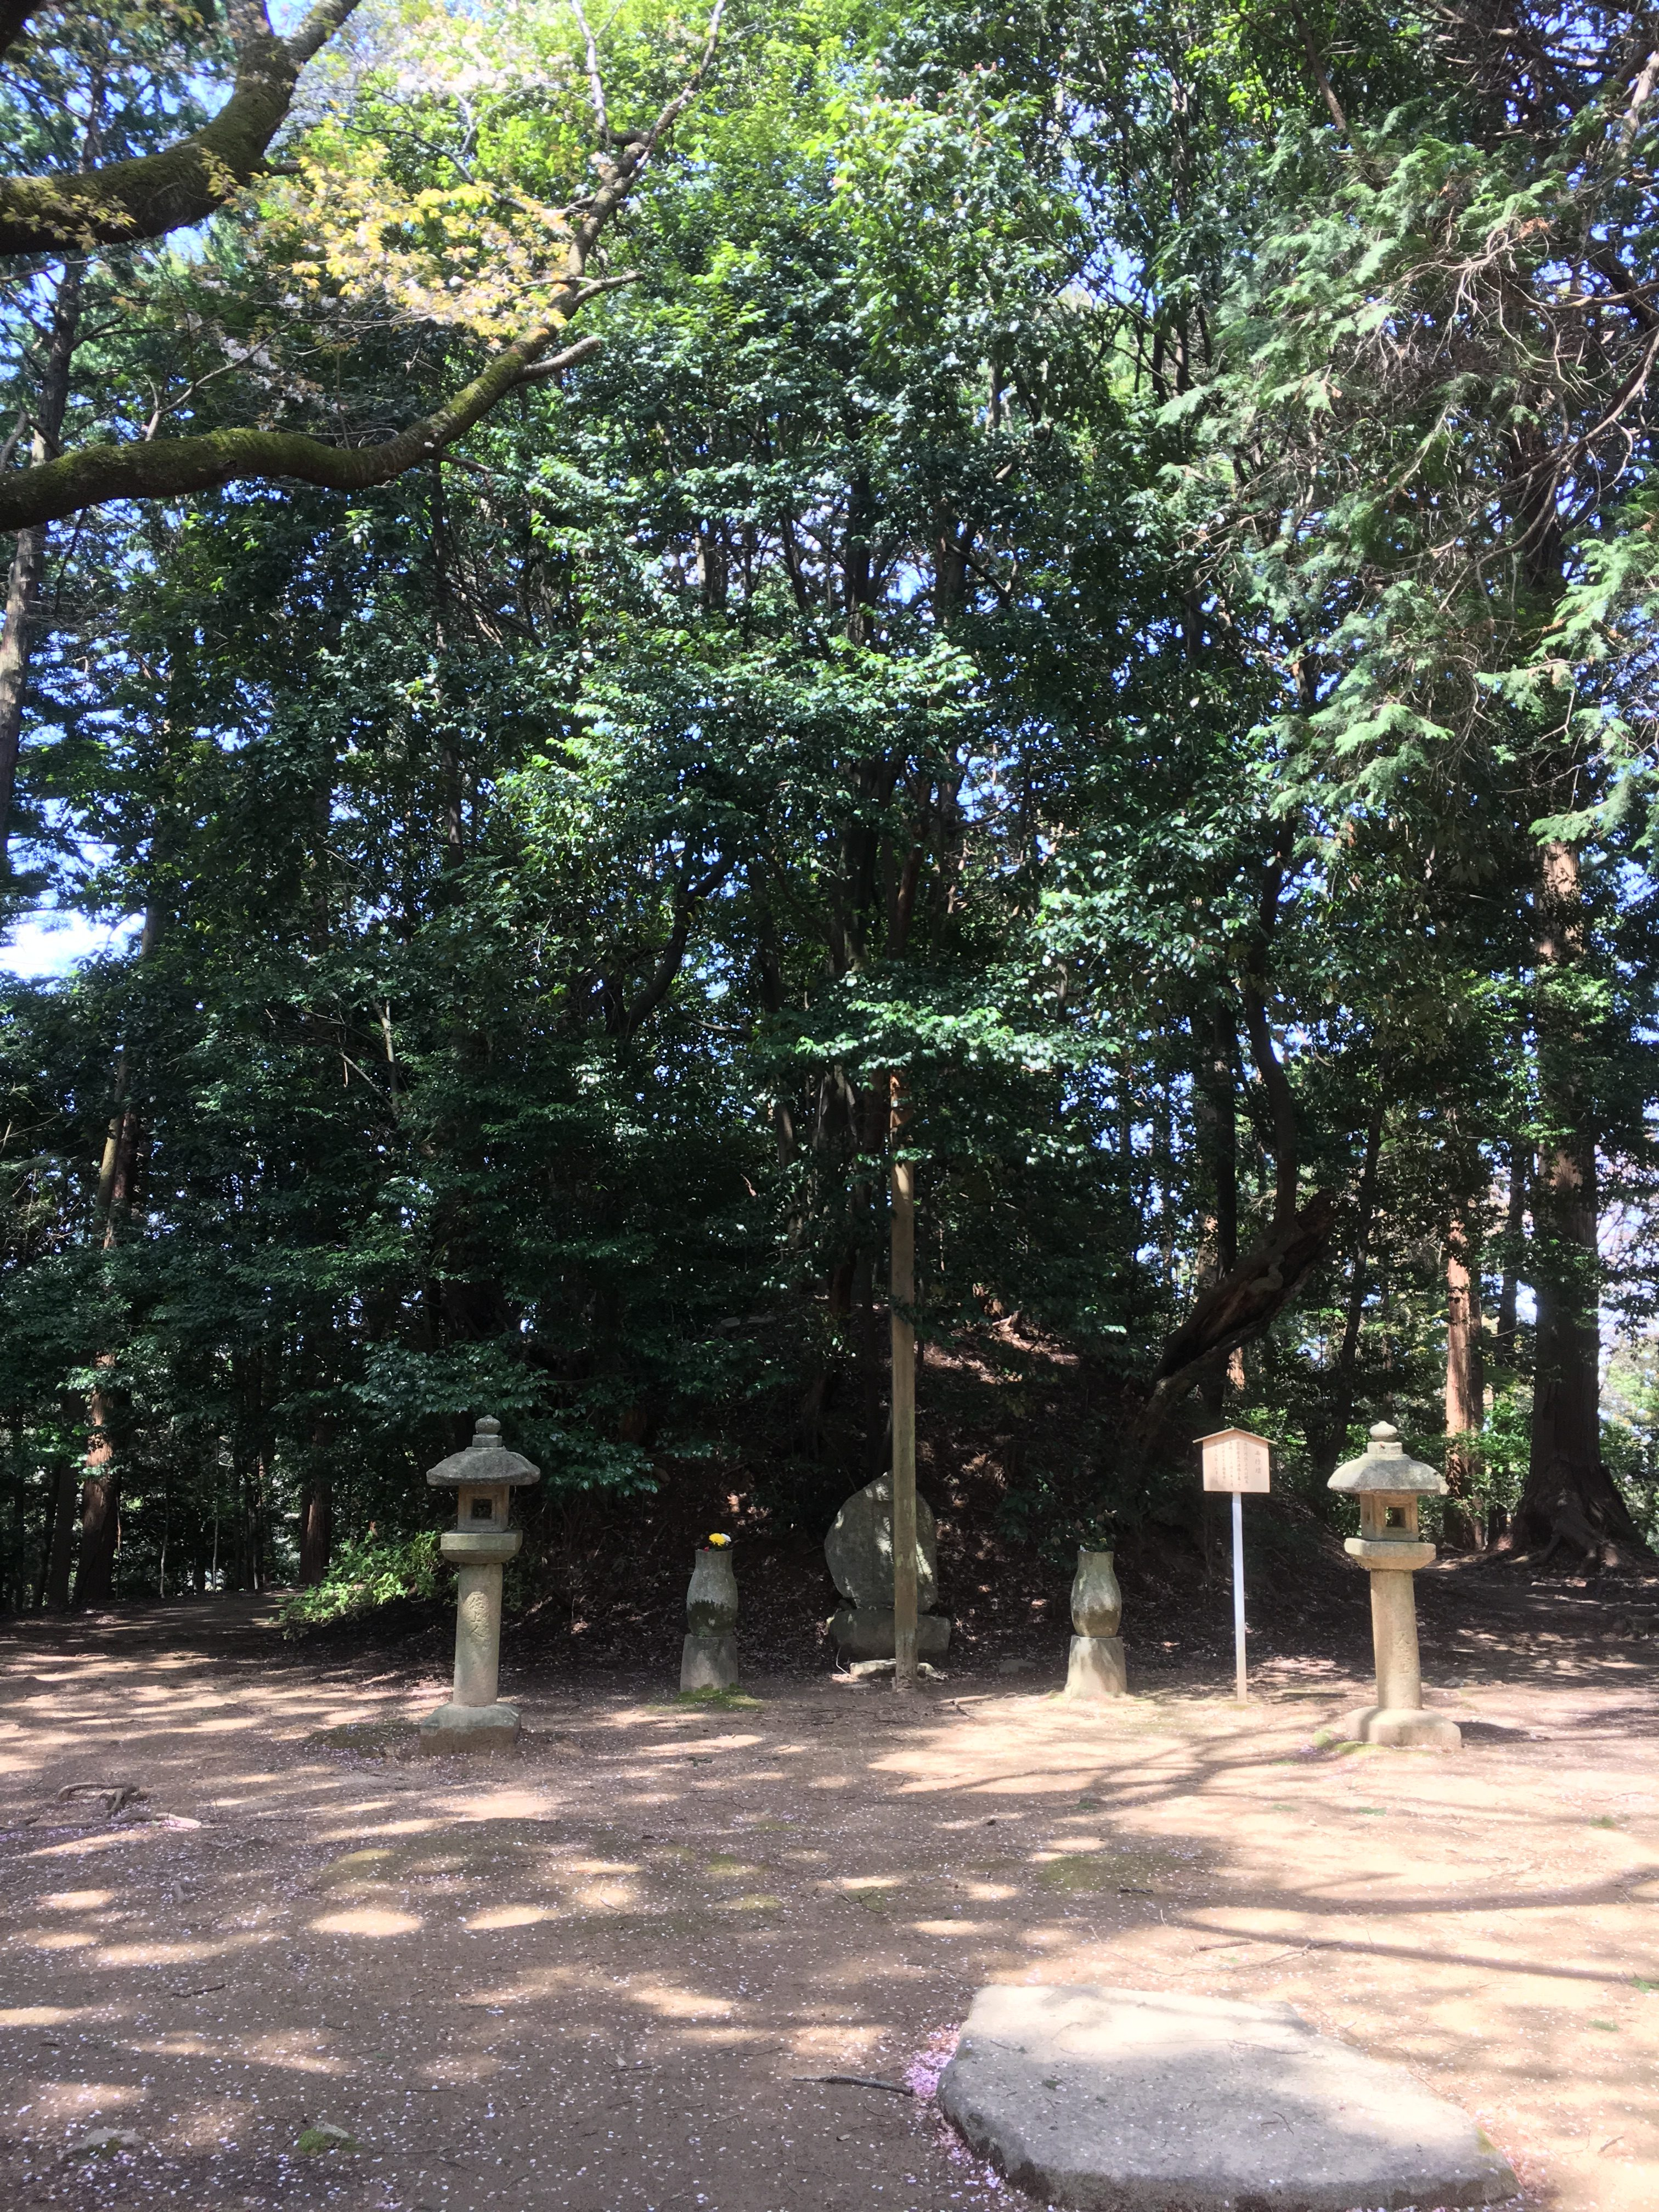 The grave of famous poet and monk saigyo at hirokawa temple